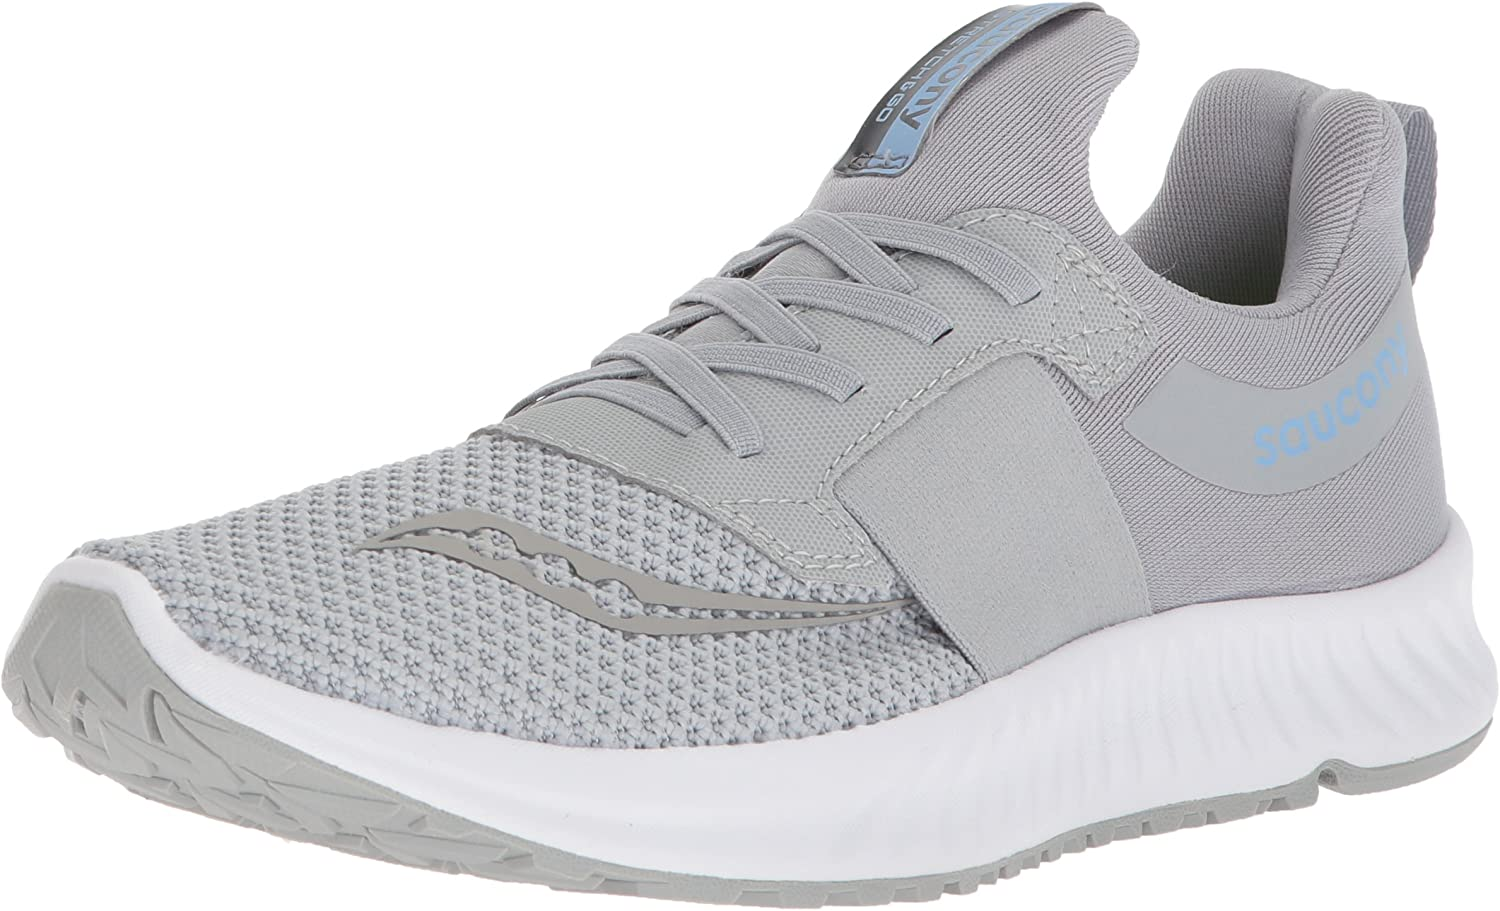 Saucony Women's Stretch & Go Breeze Running shoes